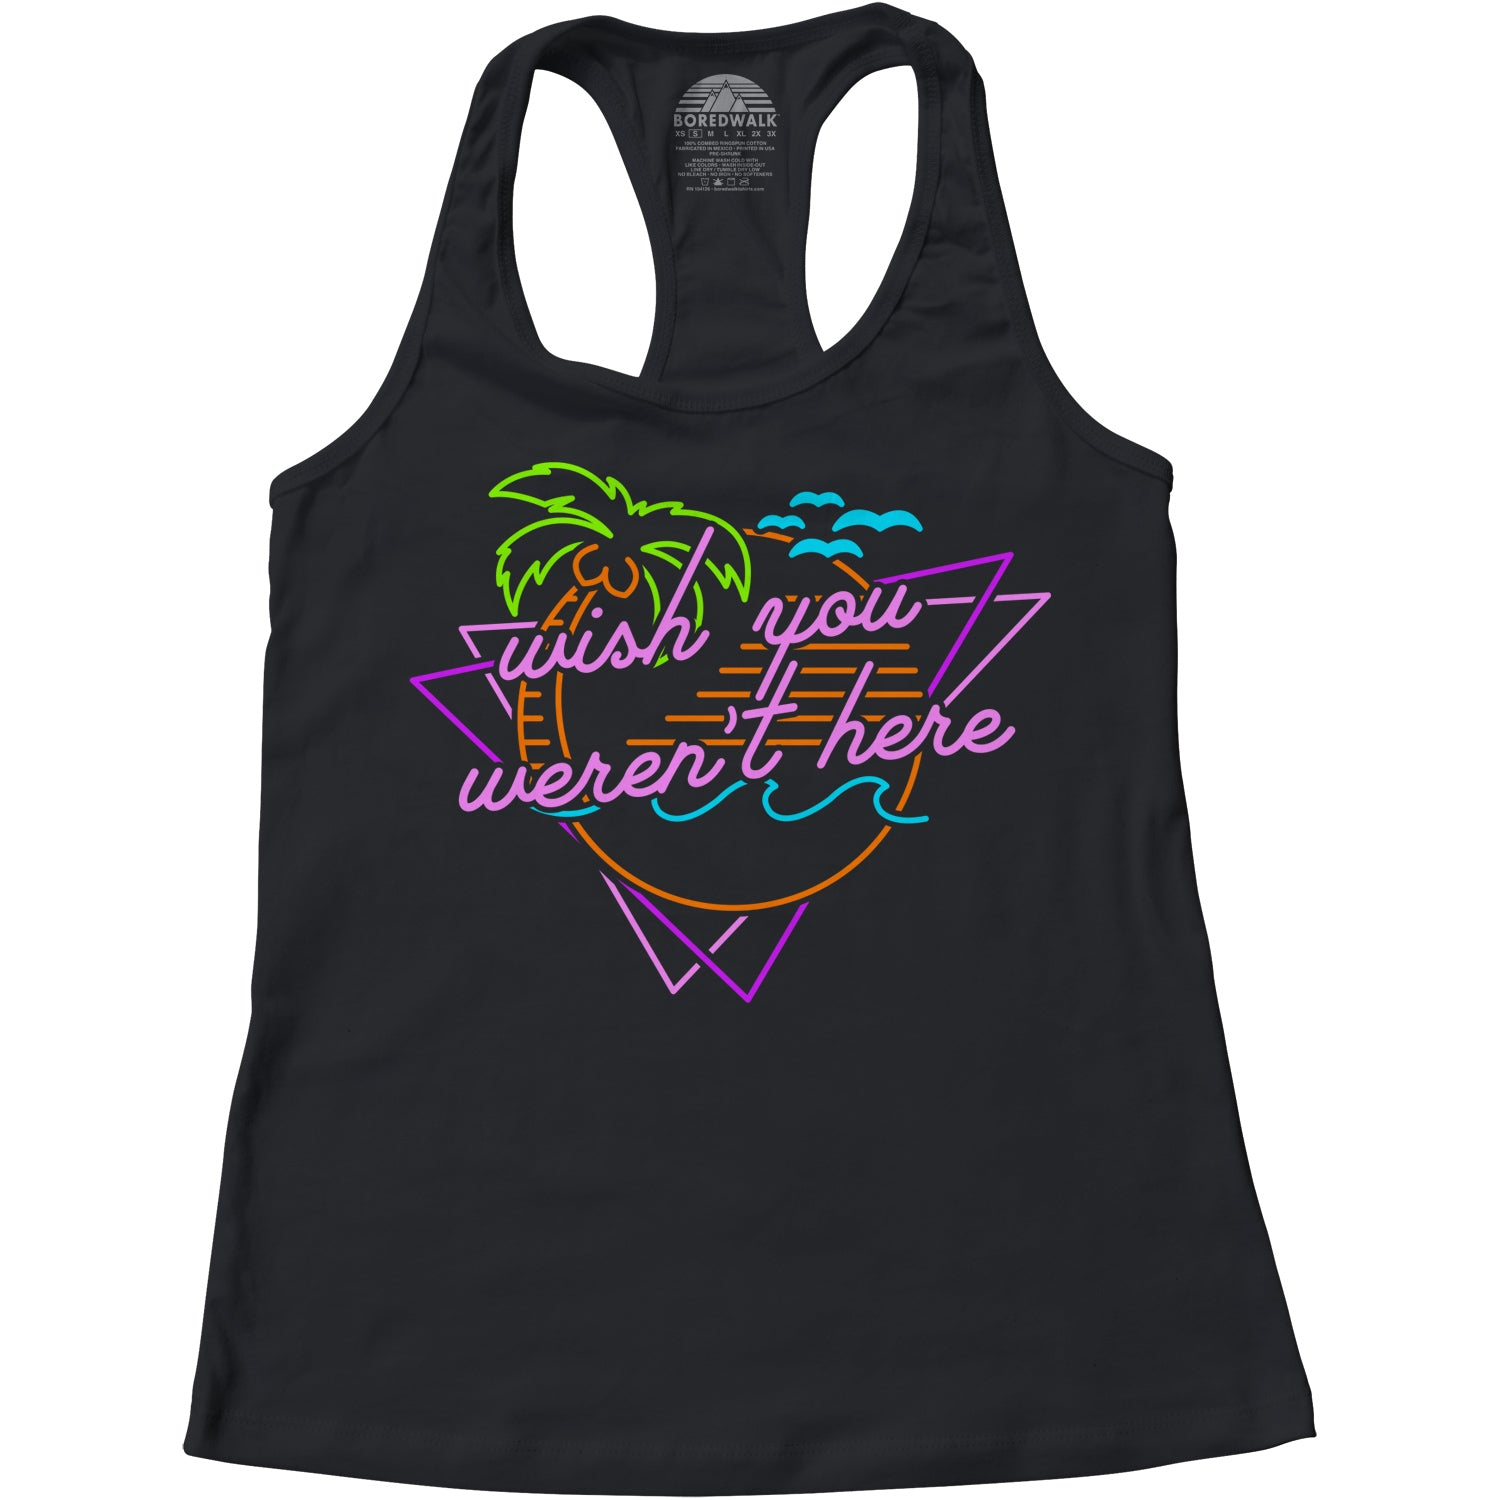 Women's Wish You Weren't Here Racerback Tank Top